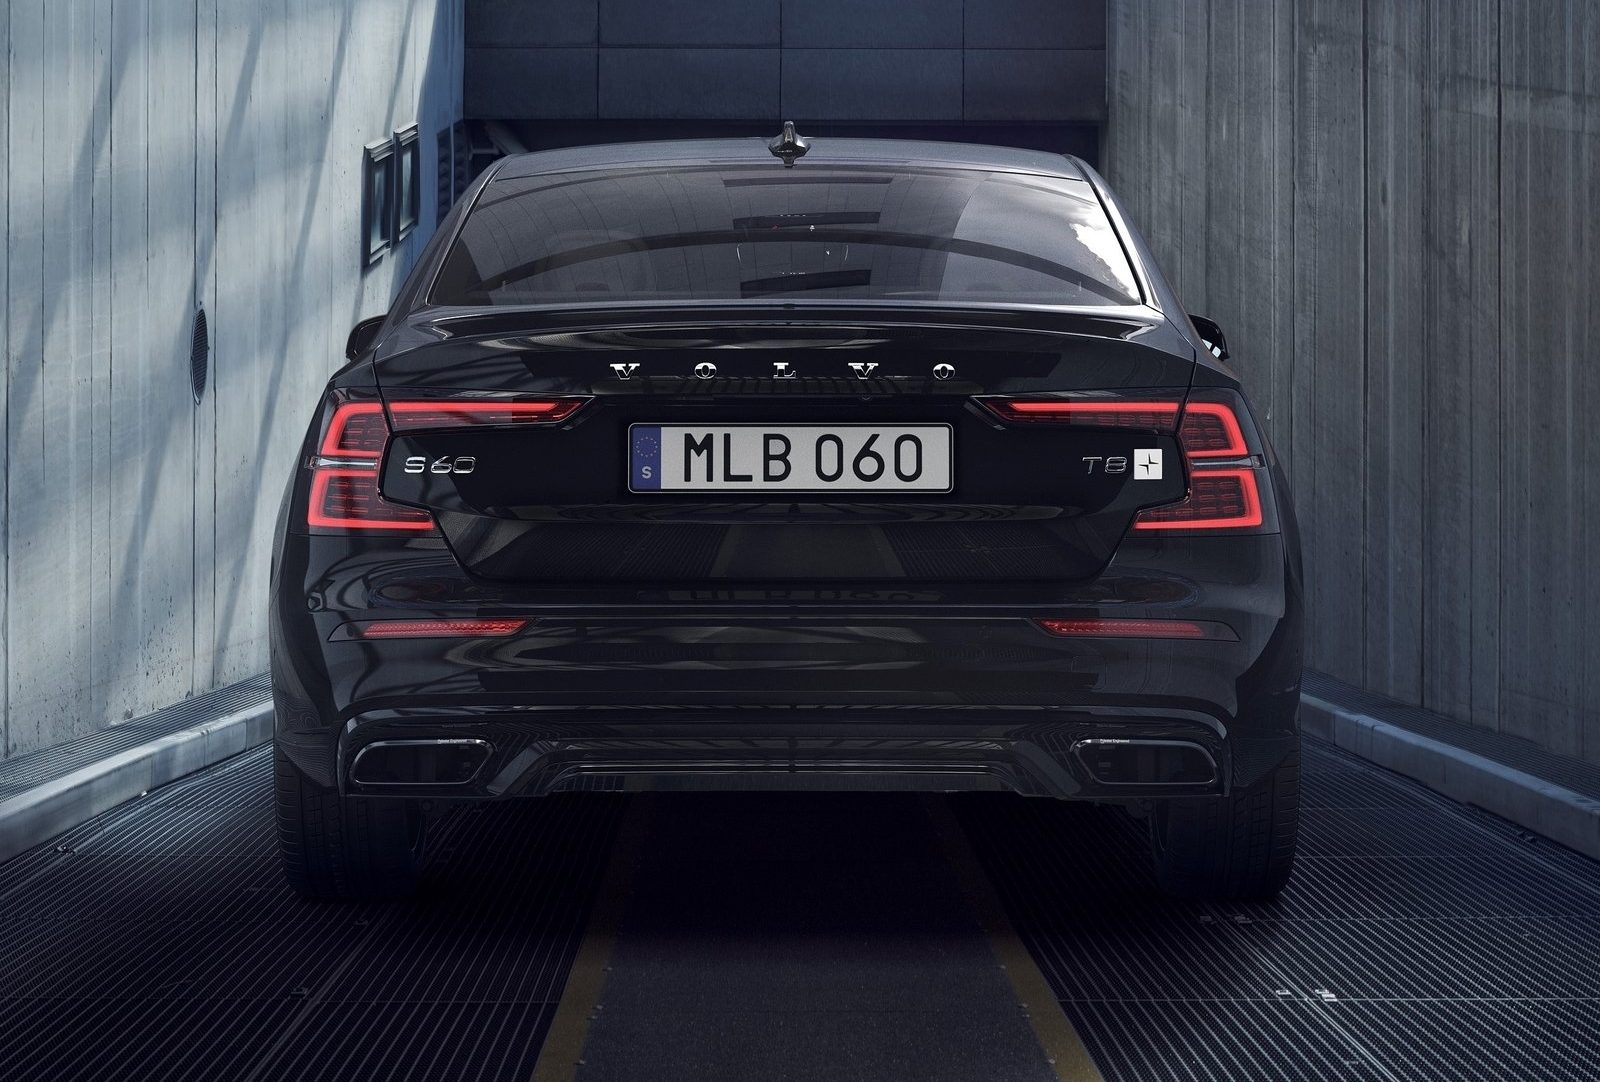 Mirror Rear View Auto Dimming With  pass Xc P as well  moreover Inch Turbine V S Nokian Winterbanden X likewise Volvo S T Twin Engine Polestar Engineered X further Maxresdefault. on volvo s90